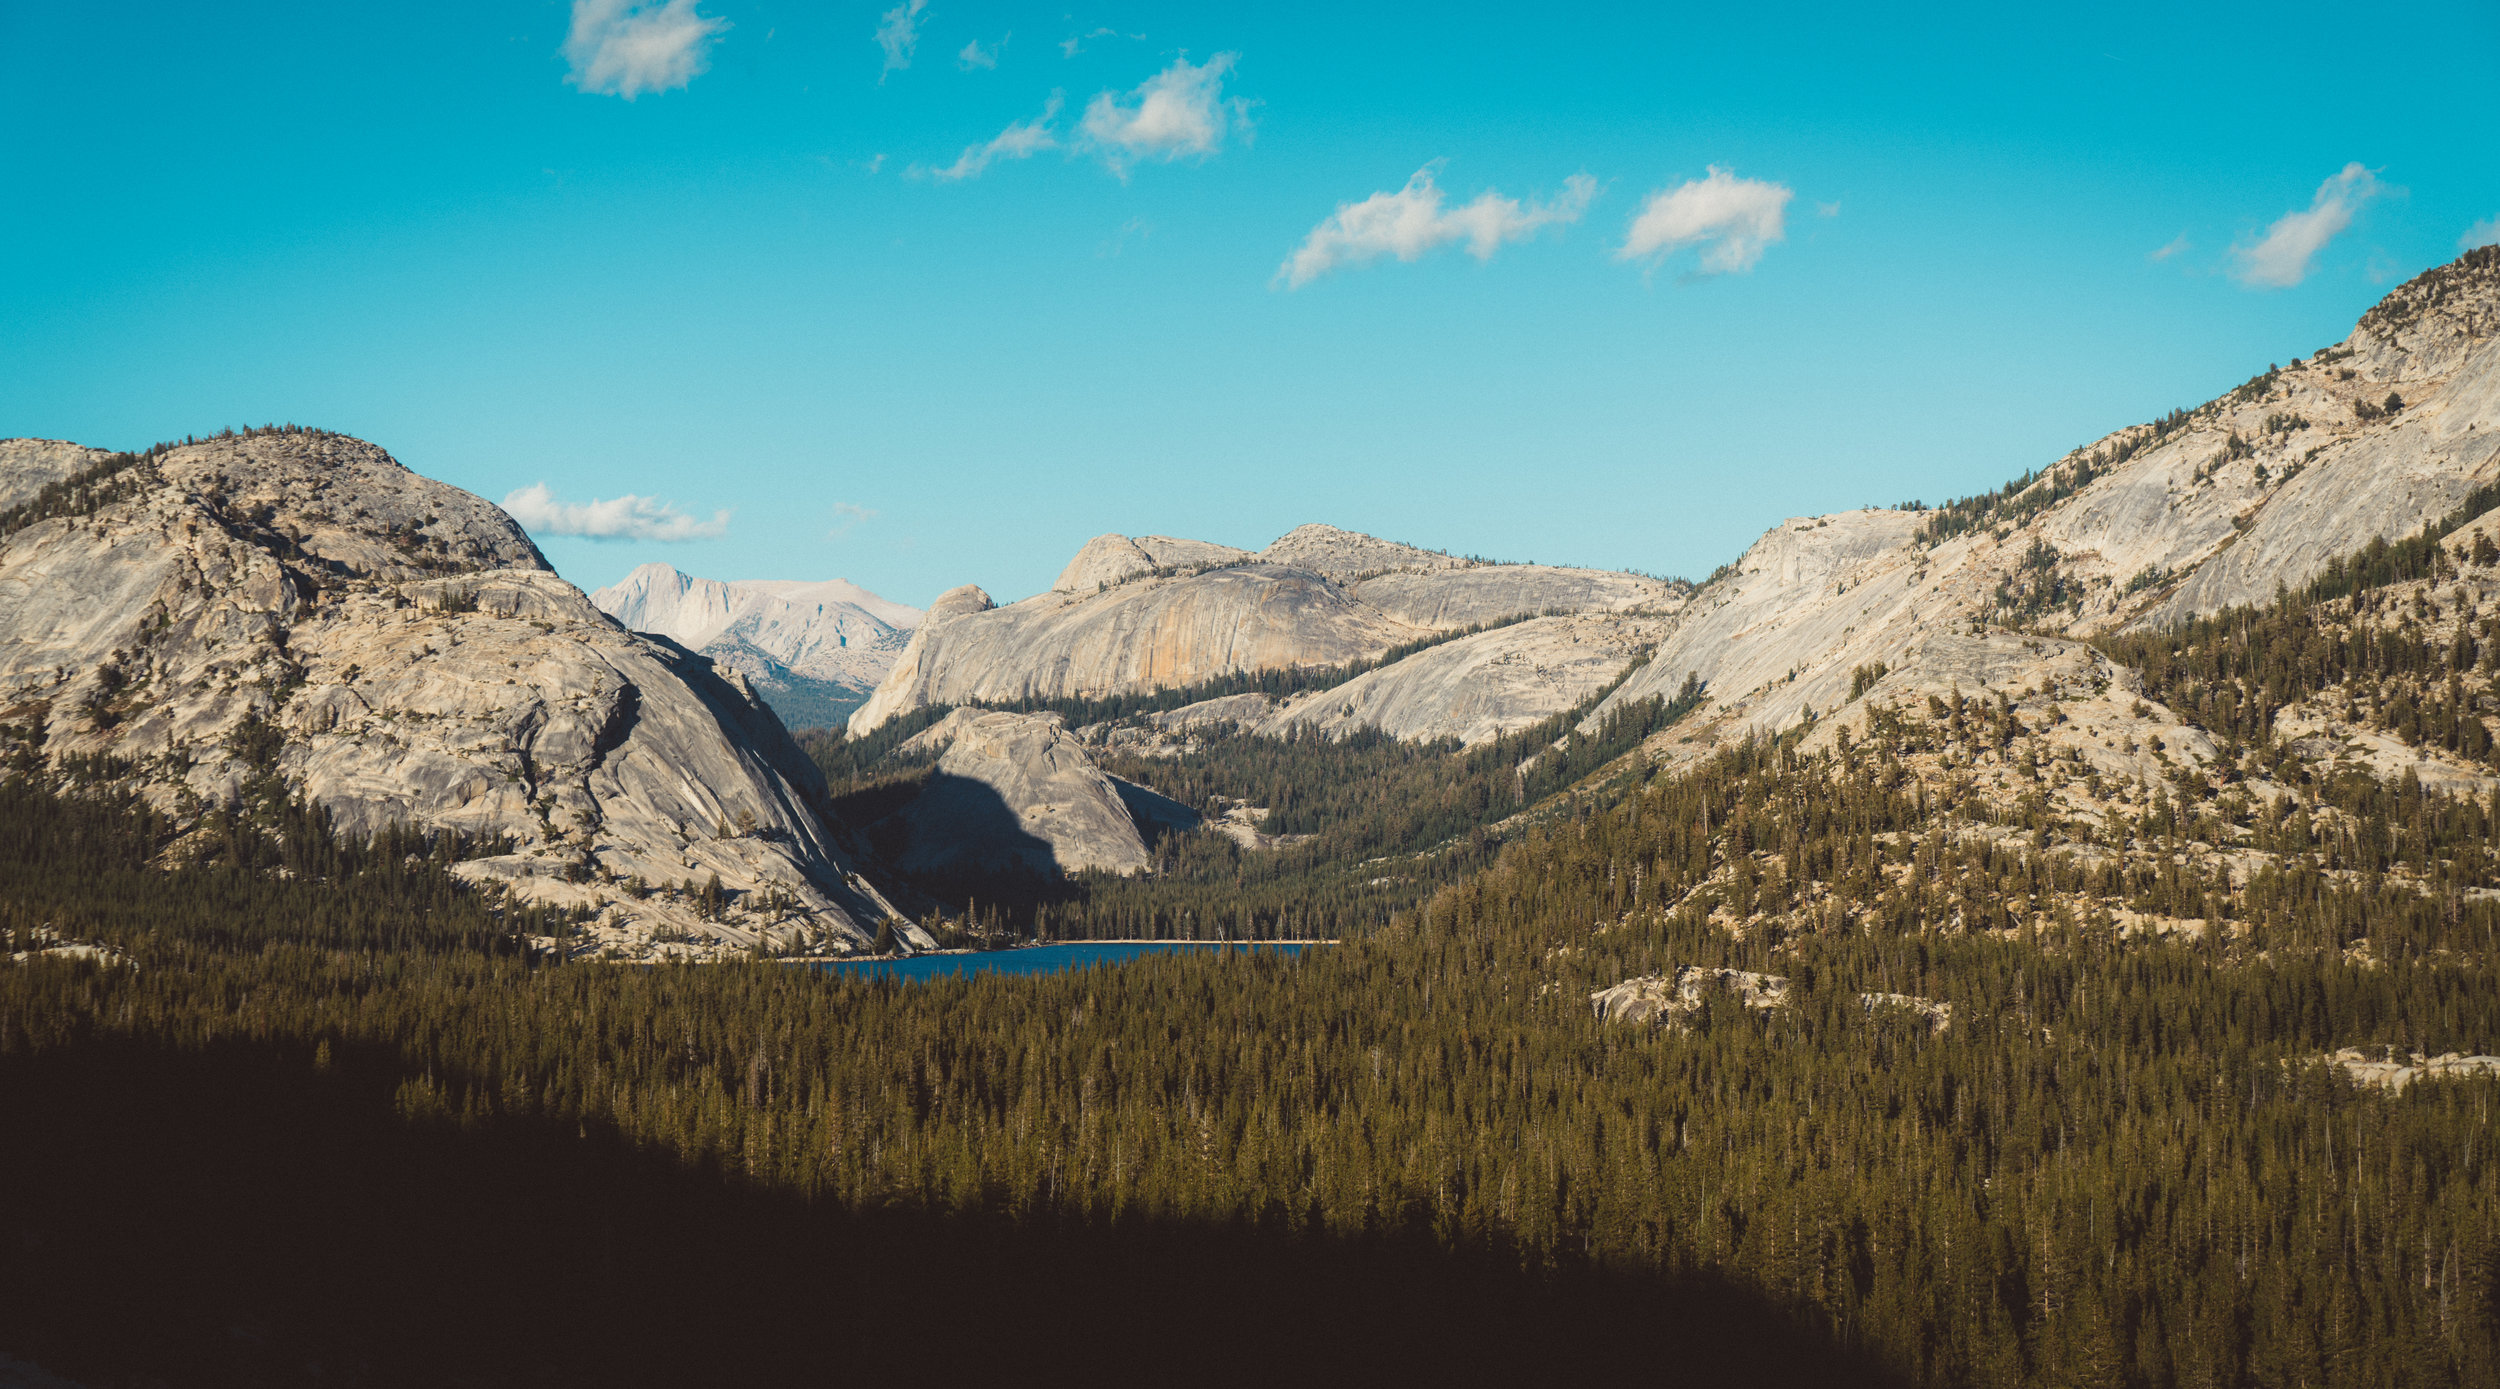 The last photo from Yosemite. This is at quite a high elevation, far from the valley, exiting the park. I believe somewhere around 8000-9000ft.